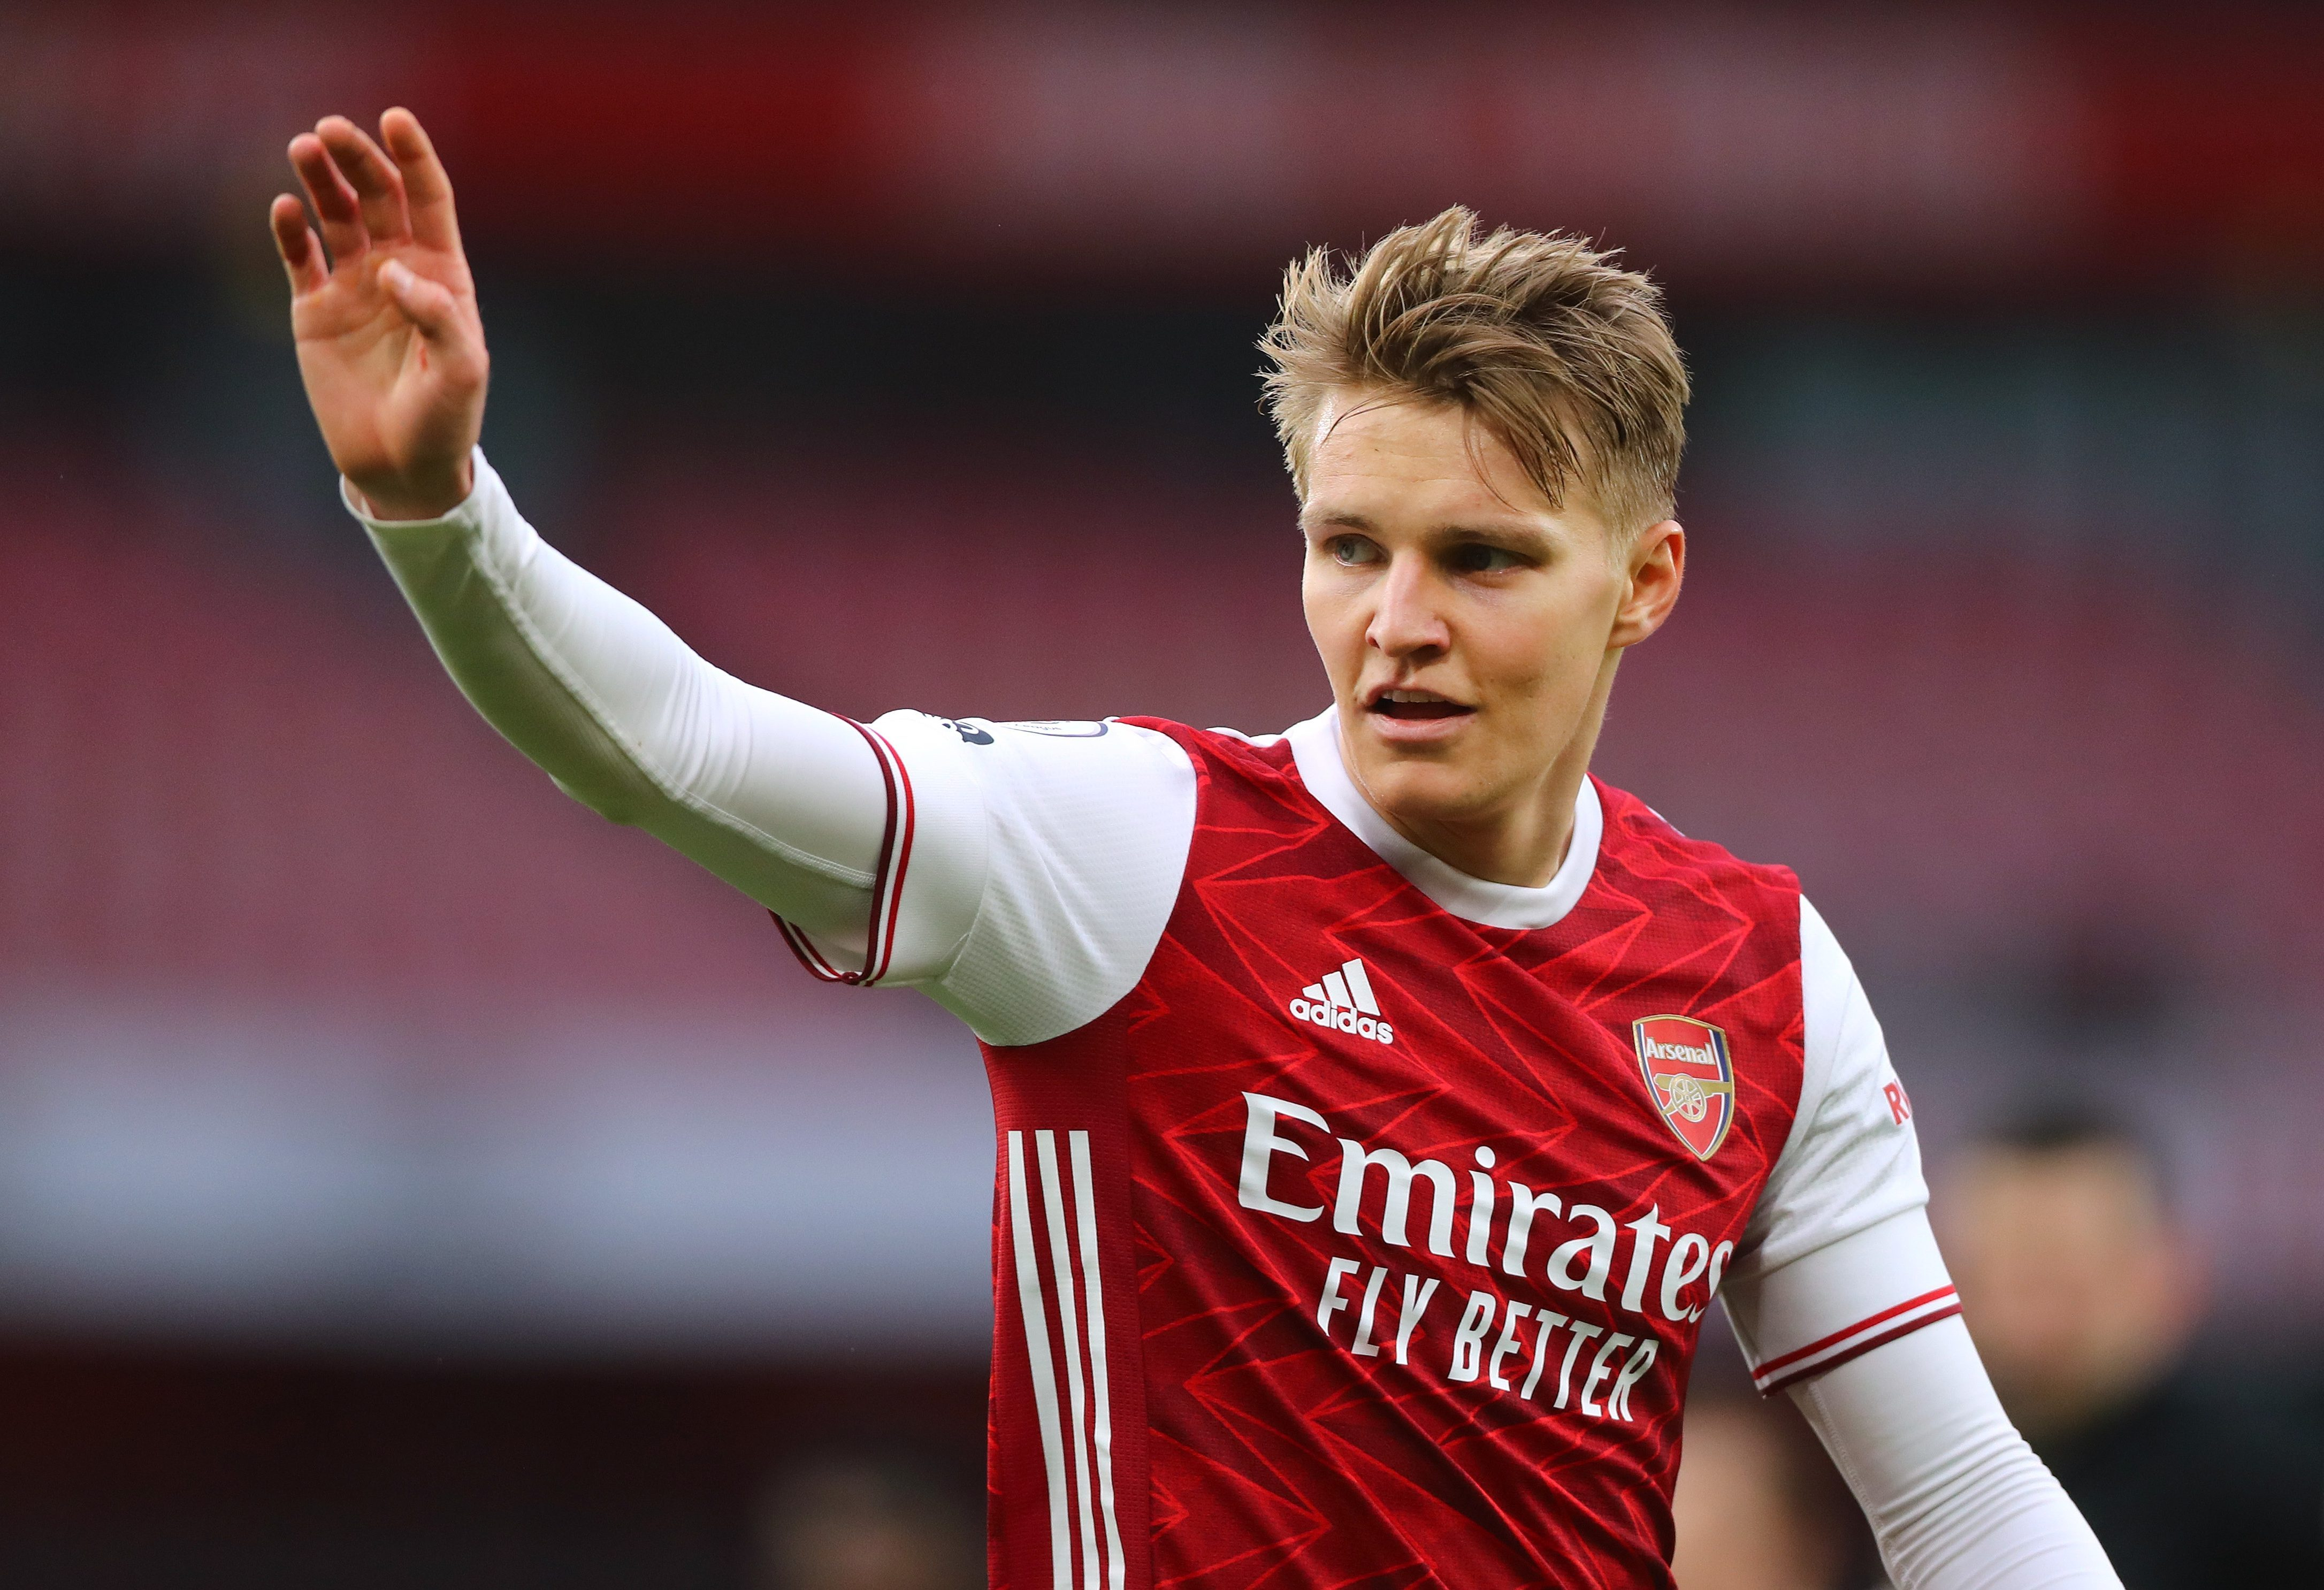 Chelsea and Liverpool 'to rival Arsenal for Martin Odegaard' as Premier League clubs set for battle to sign Real Madrid star in permanent summer transfer